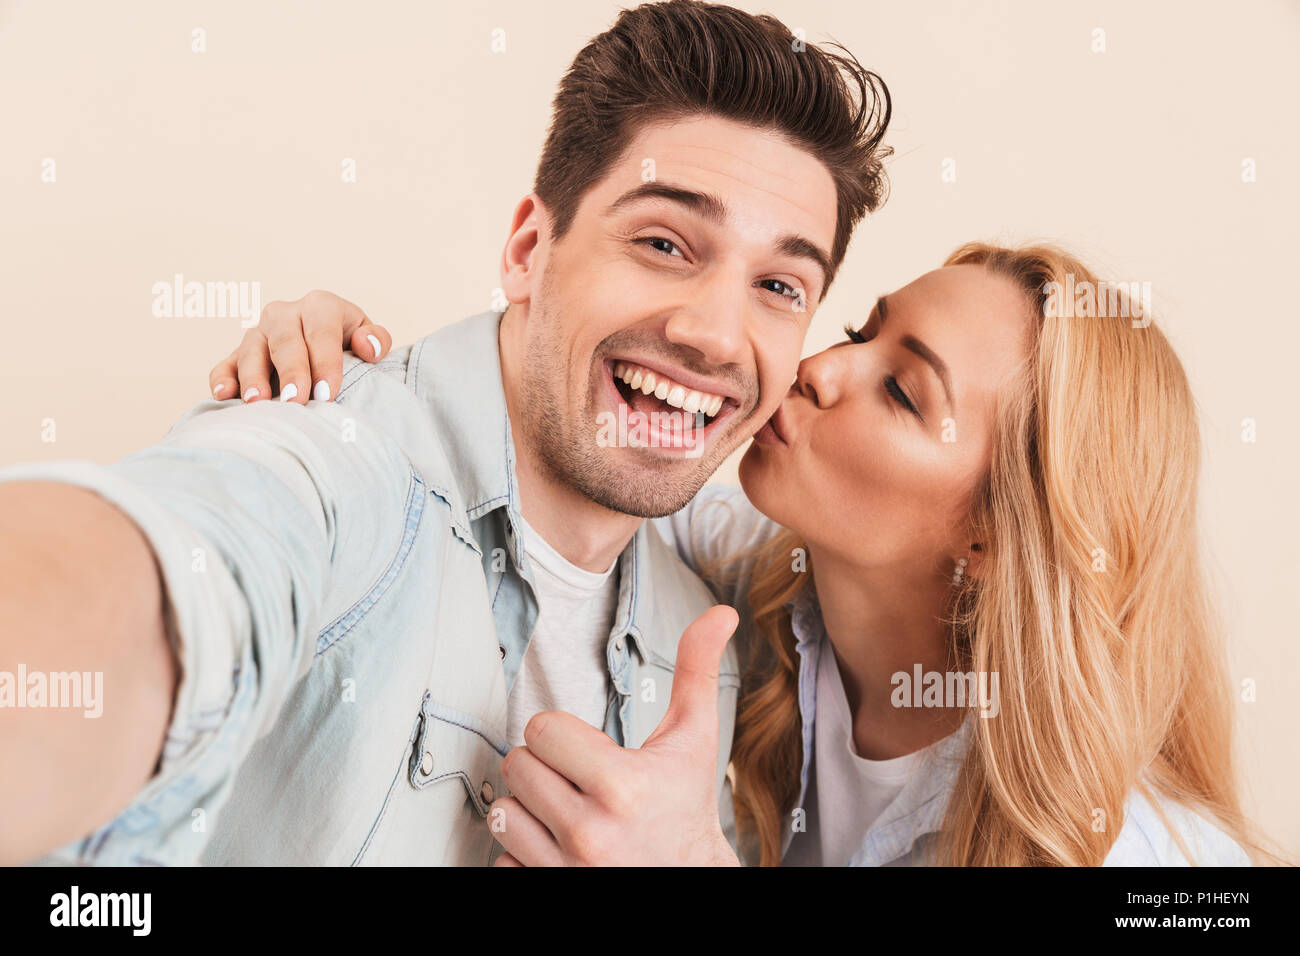 Portrait of happy man taking selfie photo and gesturing thumb up at camera while adorable woman kissing his cheek isolated over yellow background - Stock Image